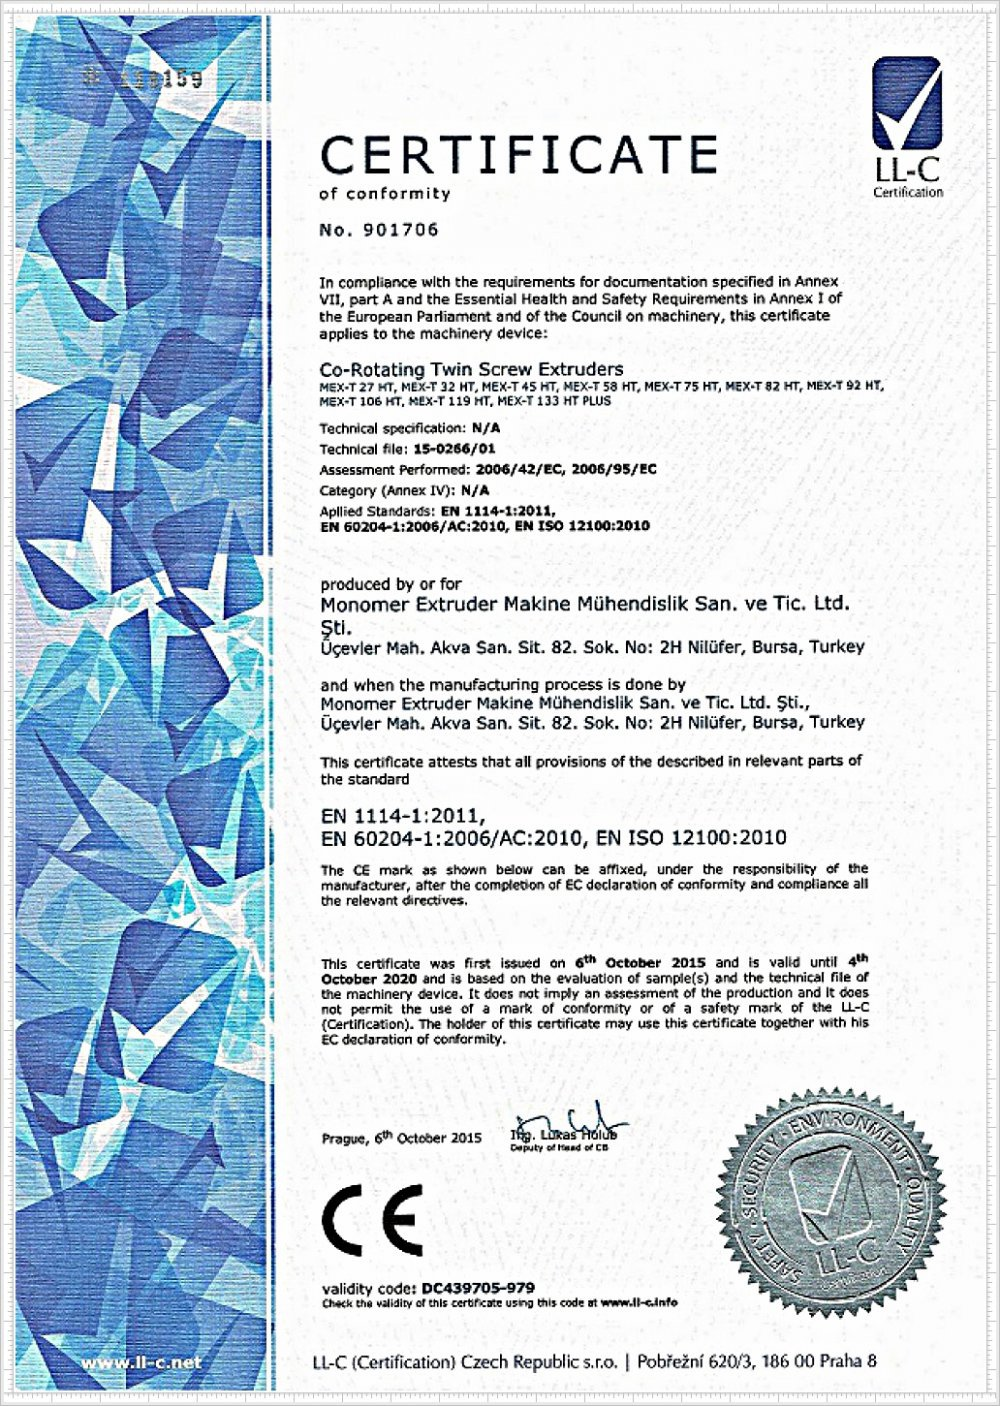 Our company has documented its quality with CE certificate.